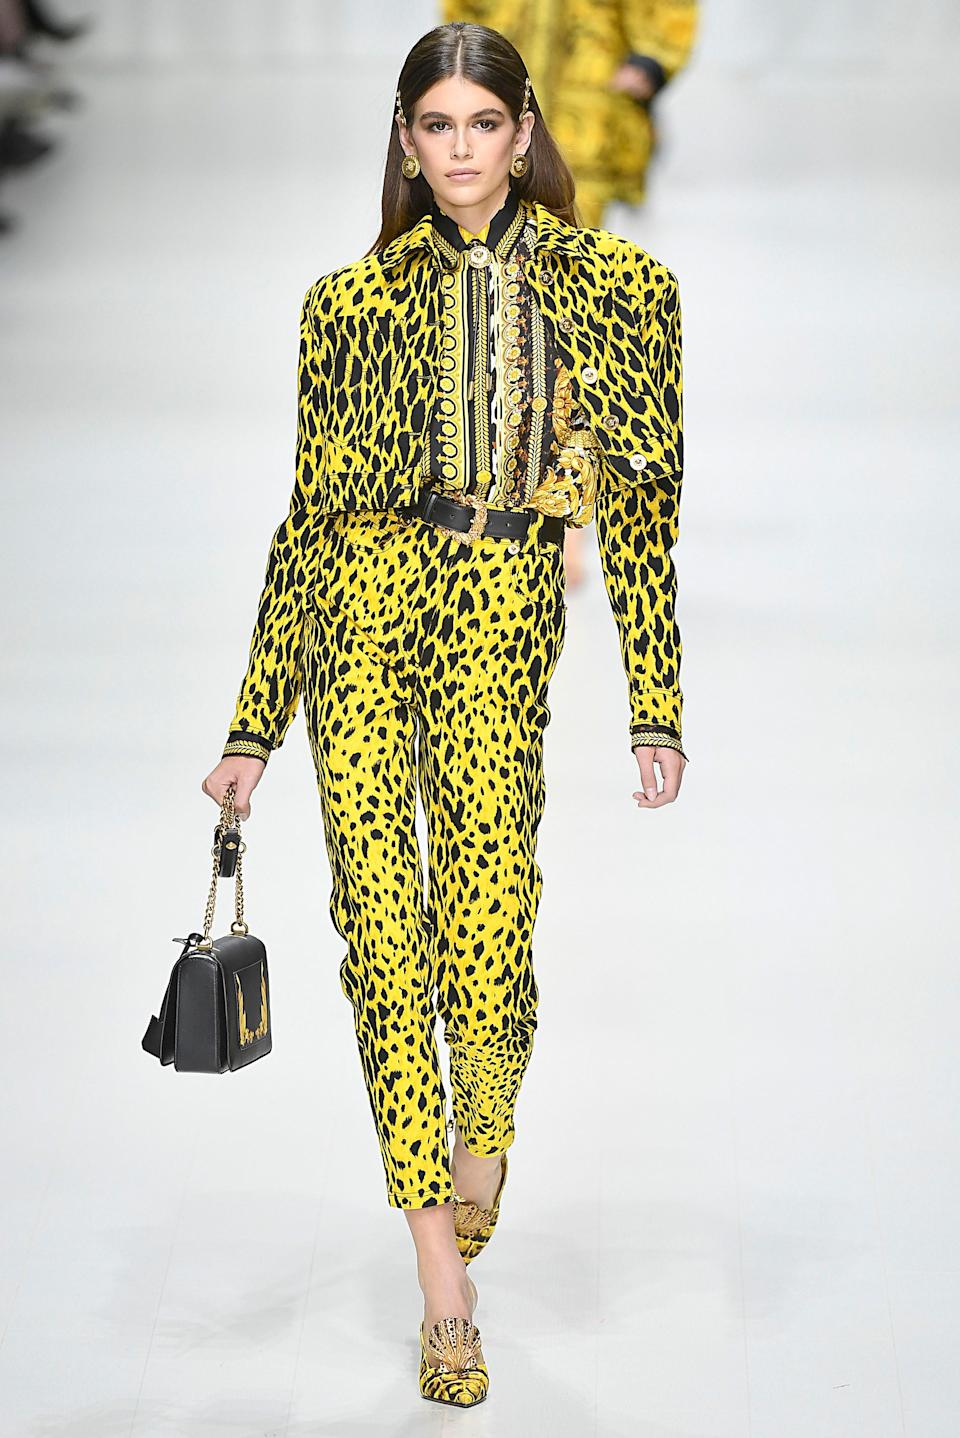 Bright and bold in a head-to-toe yellow printed suit.